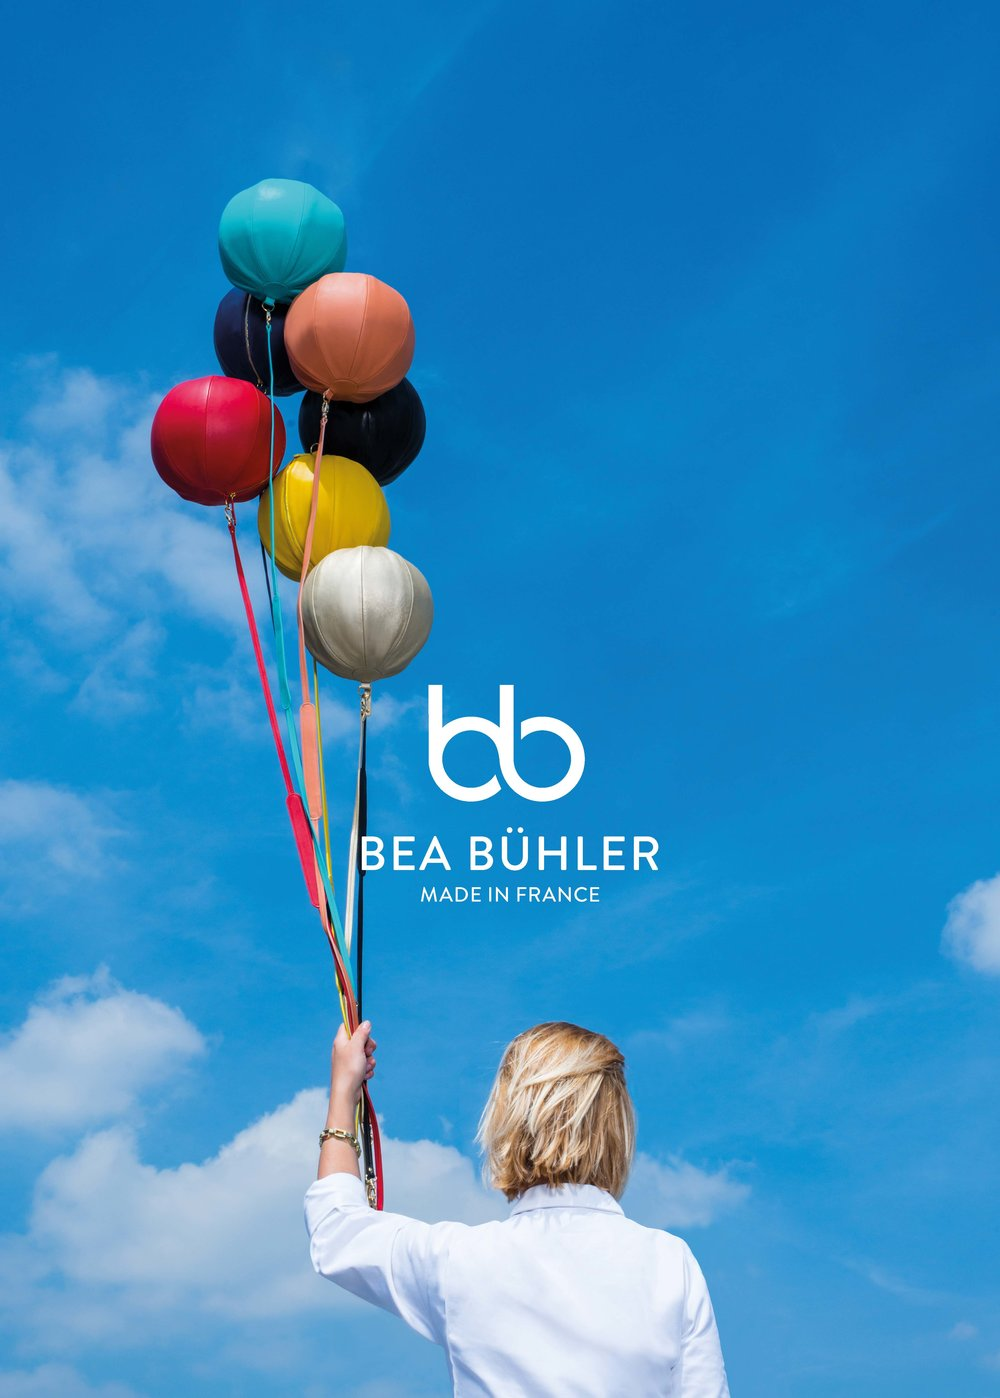 bea_buehler_balloon_bag_made_in_france